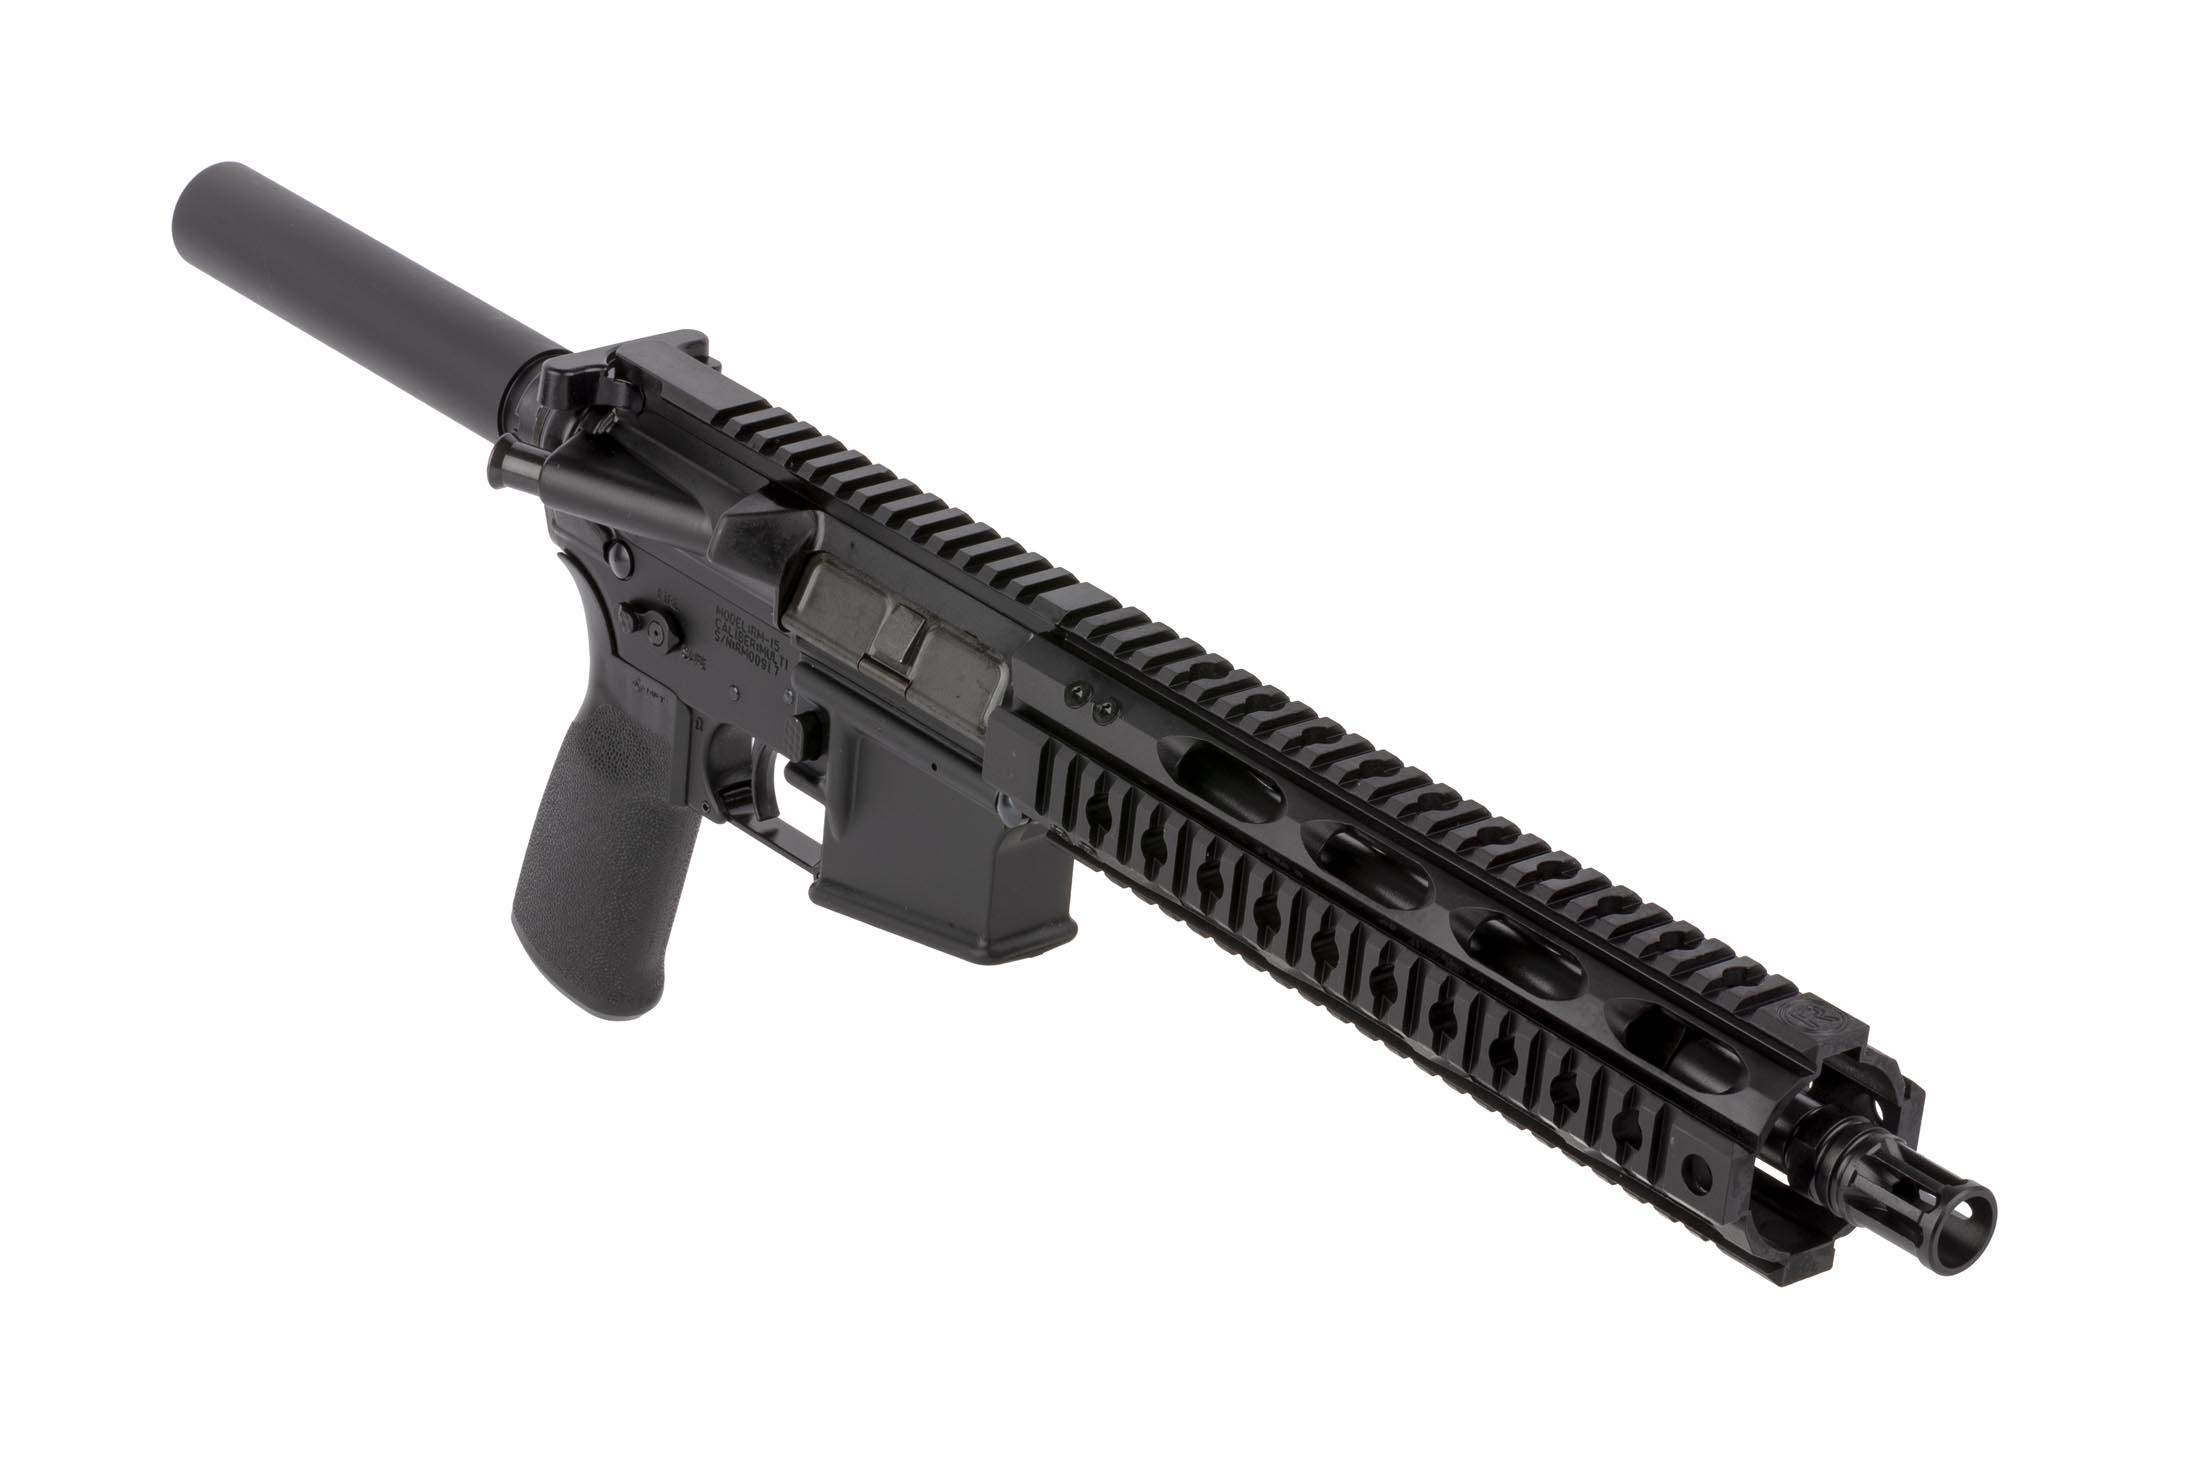 Radical Firearms 105in AR 15 Pistol In 556 NATO Is Built With A Lightweight